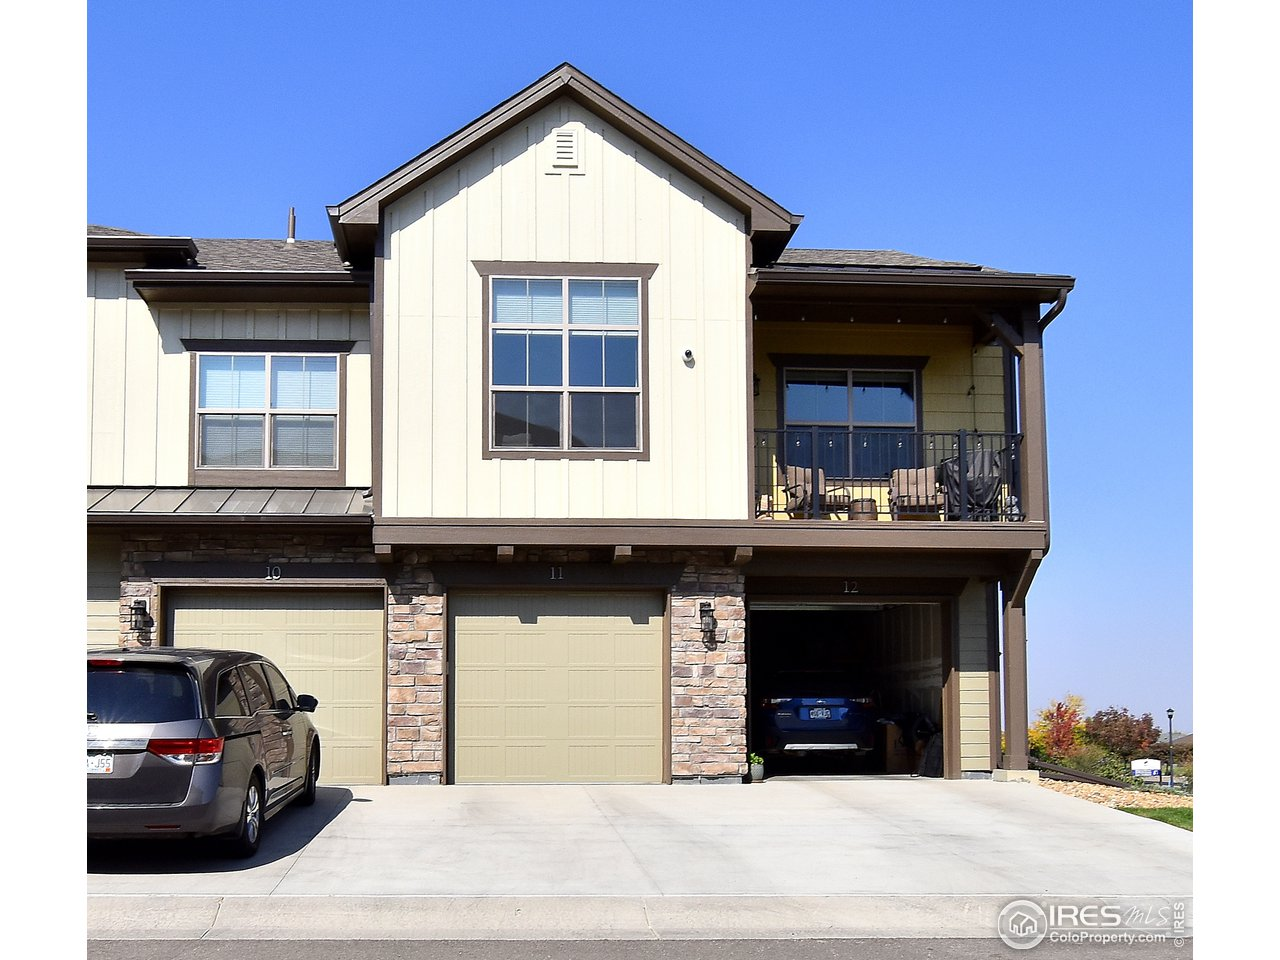 This garage is HUGE and attached to the building measuring 335 sq. feet! Parking behind garage is allowed!